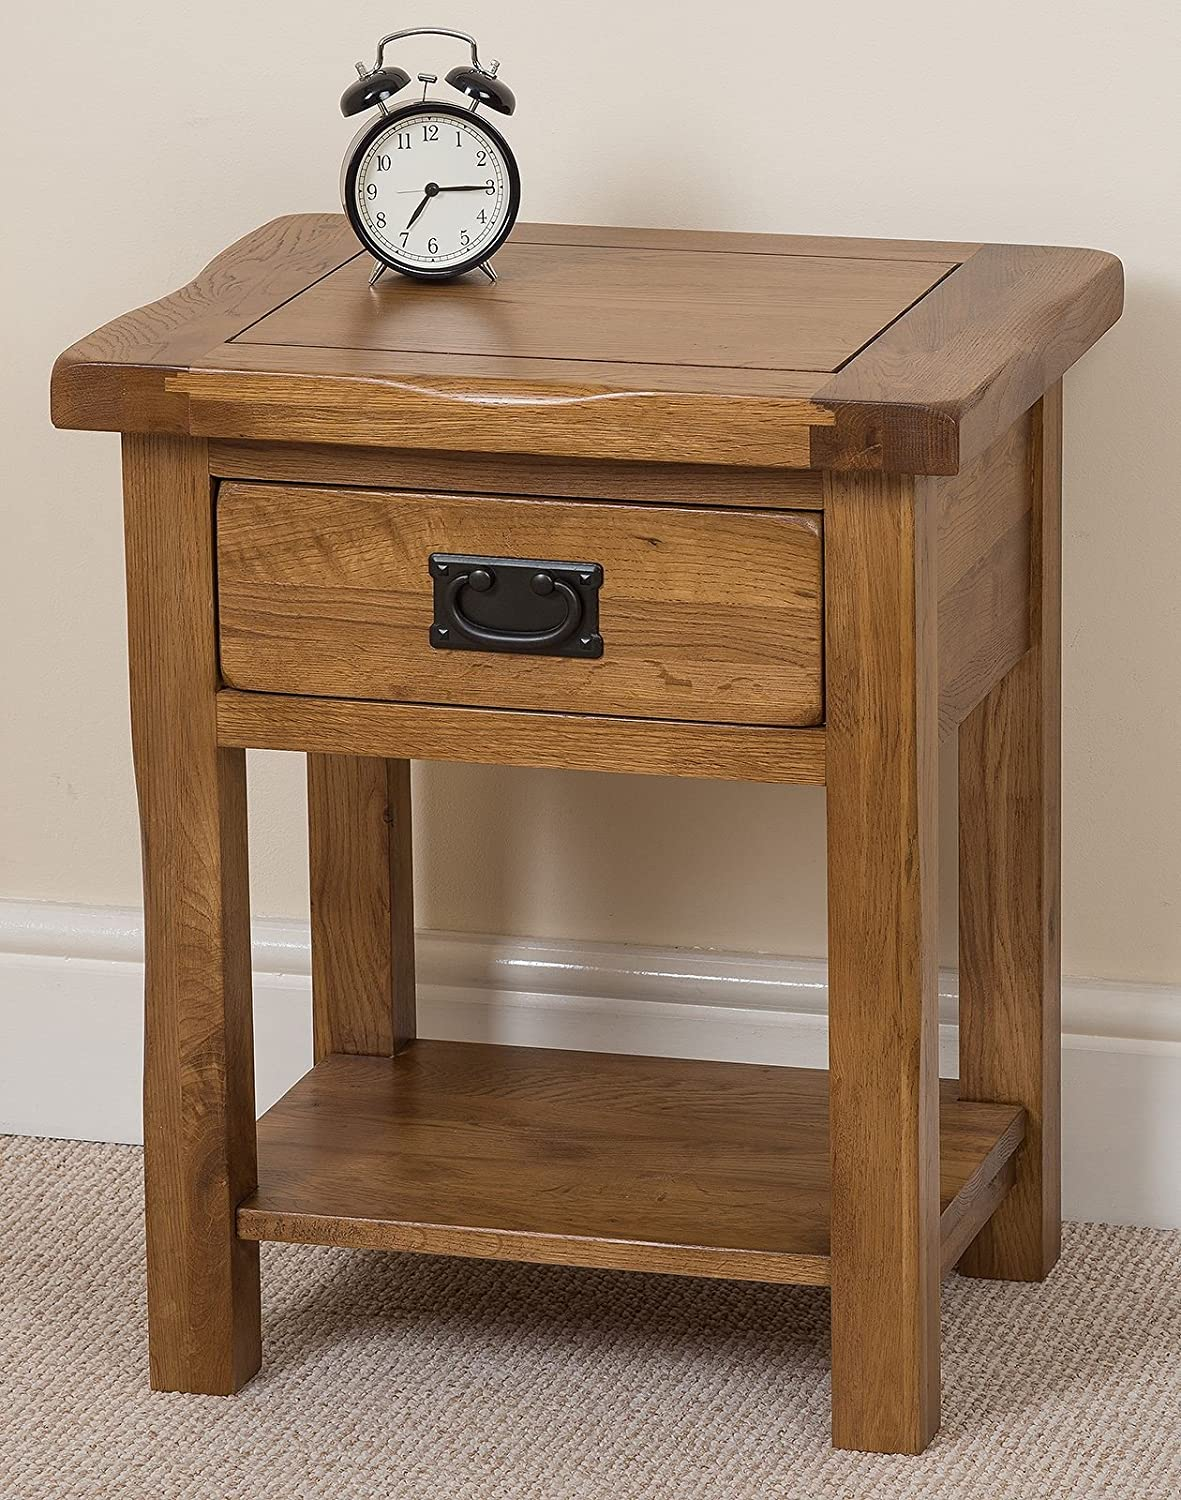 Cotswold solid oak lampside table 61 x 41 x 50 cm amazon cotswold solid oak lampside table 61 x 41 x 50 cm amazon kitchen home mozeypictures Choice Image